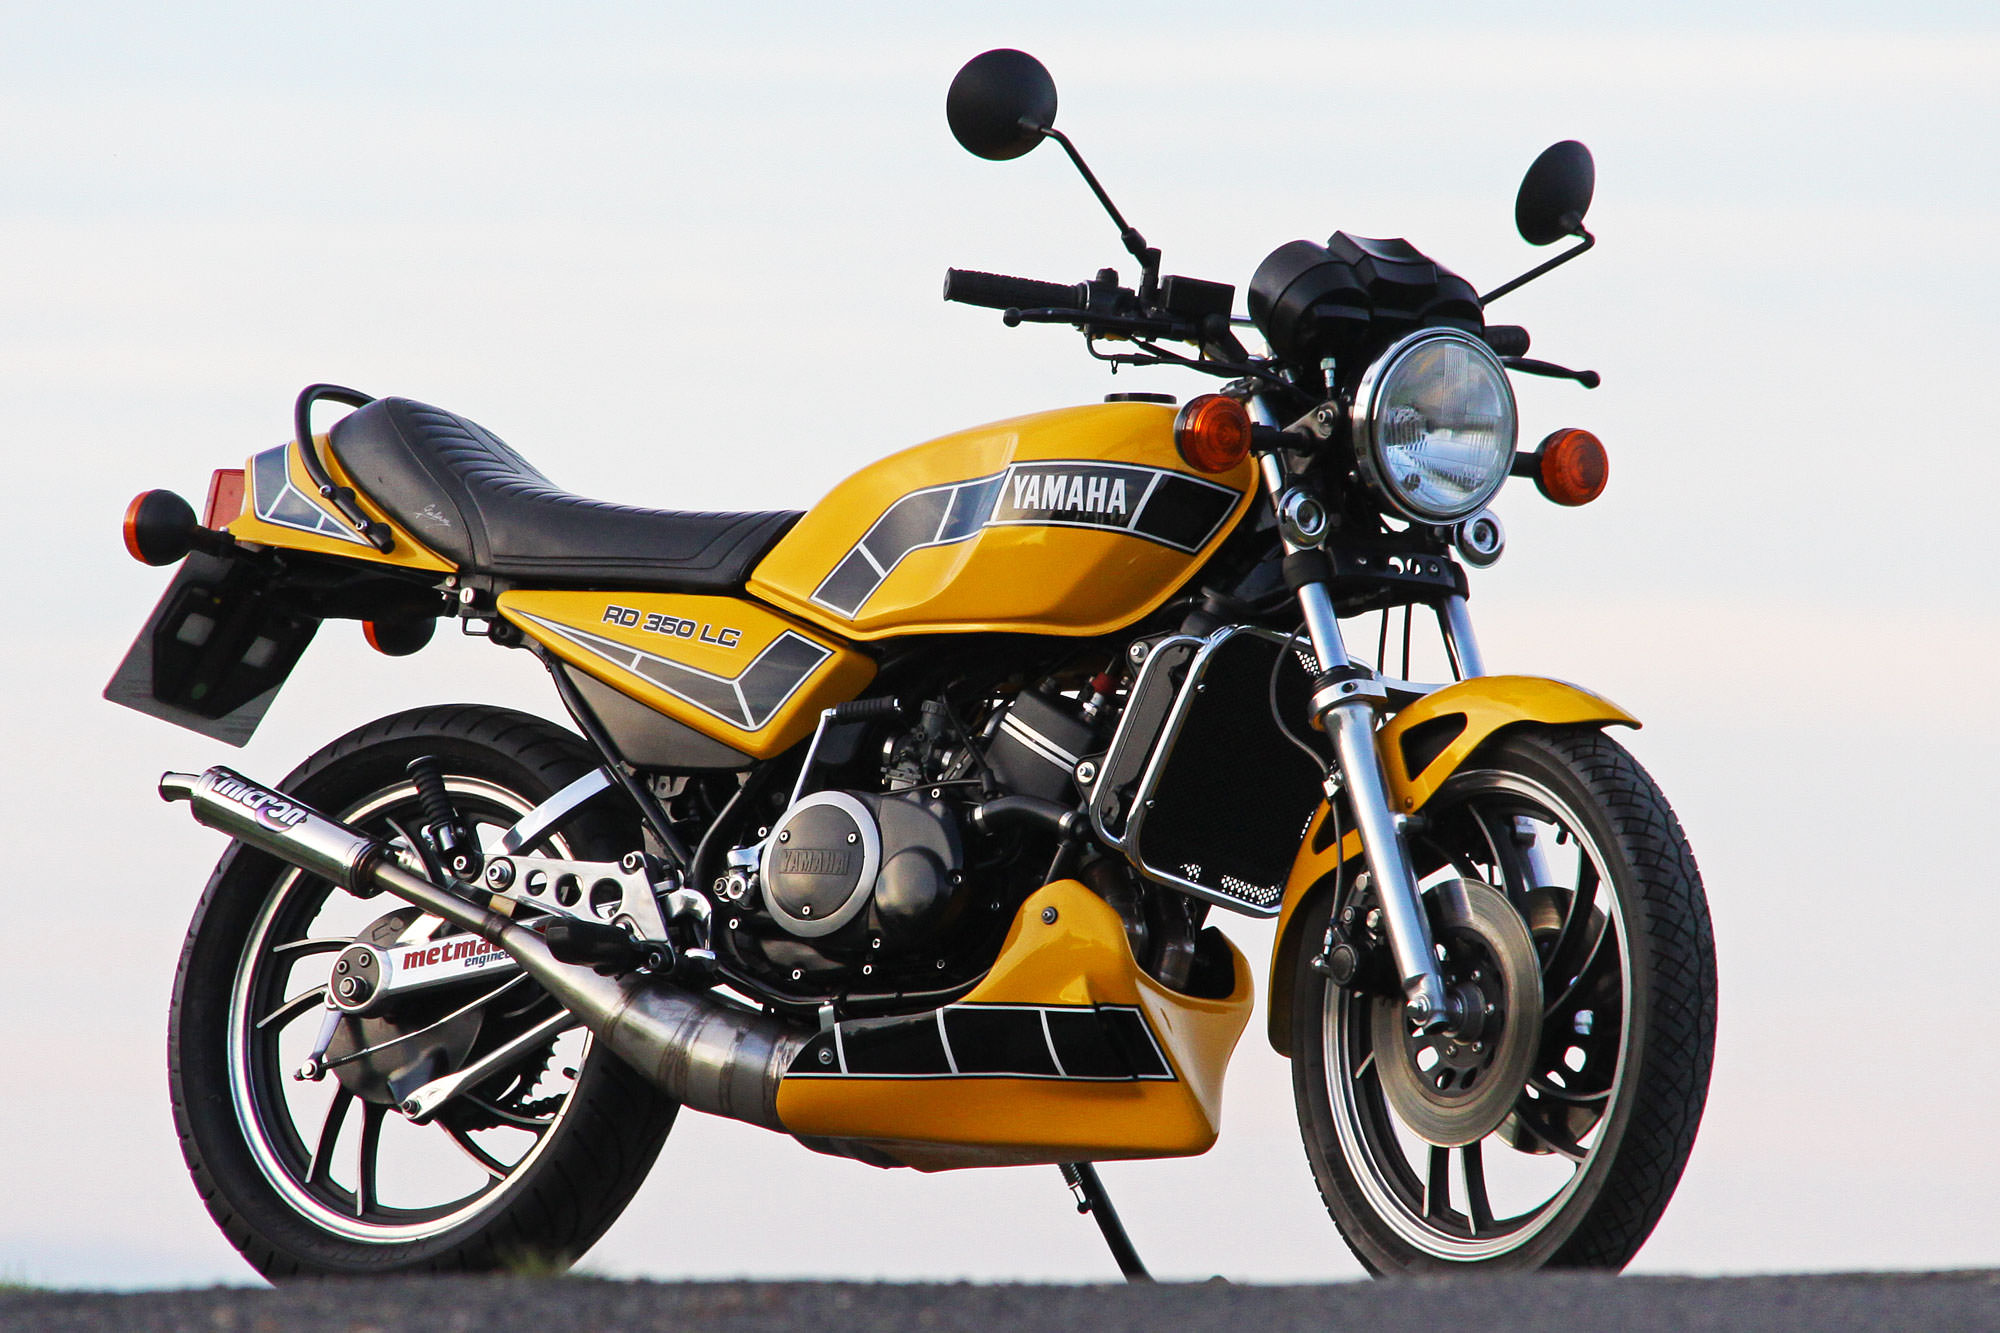 Yamaha RD 350 LC Photos, Informations, Articles - Bikes BestCarMag com